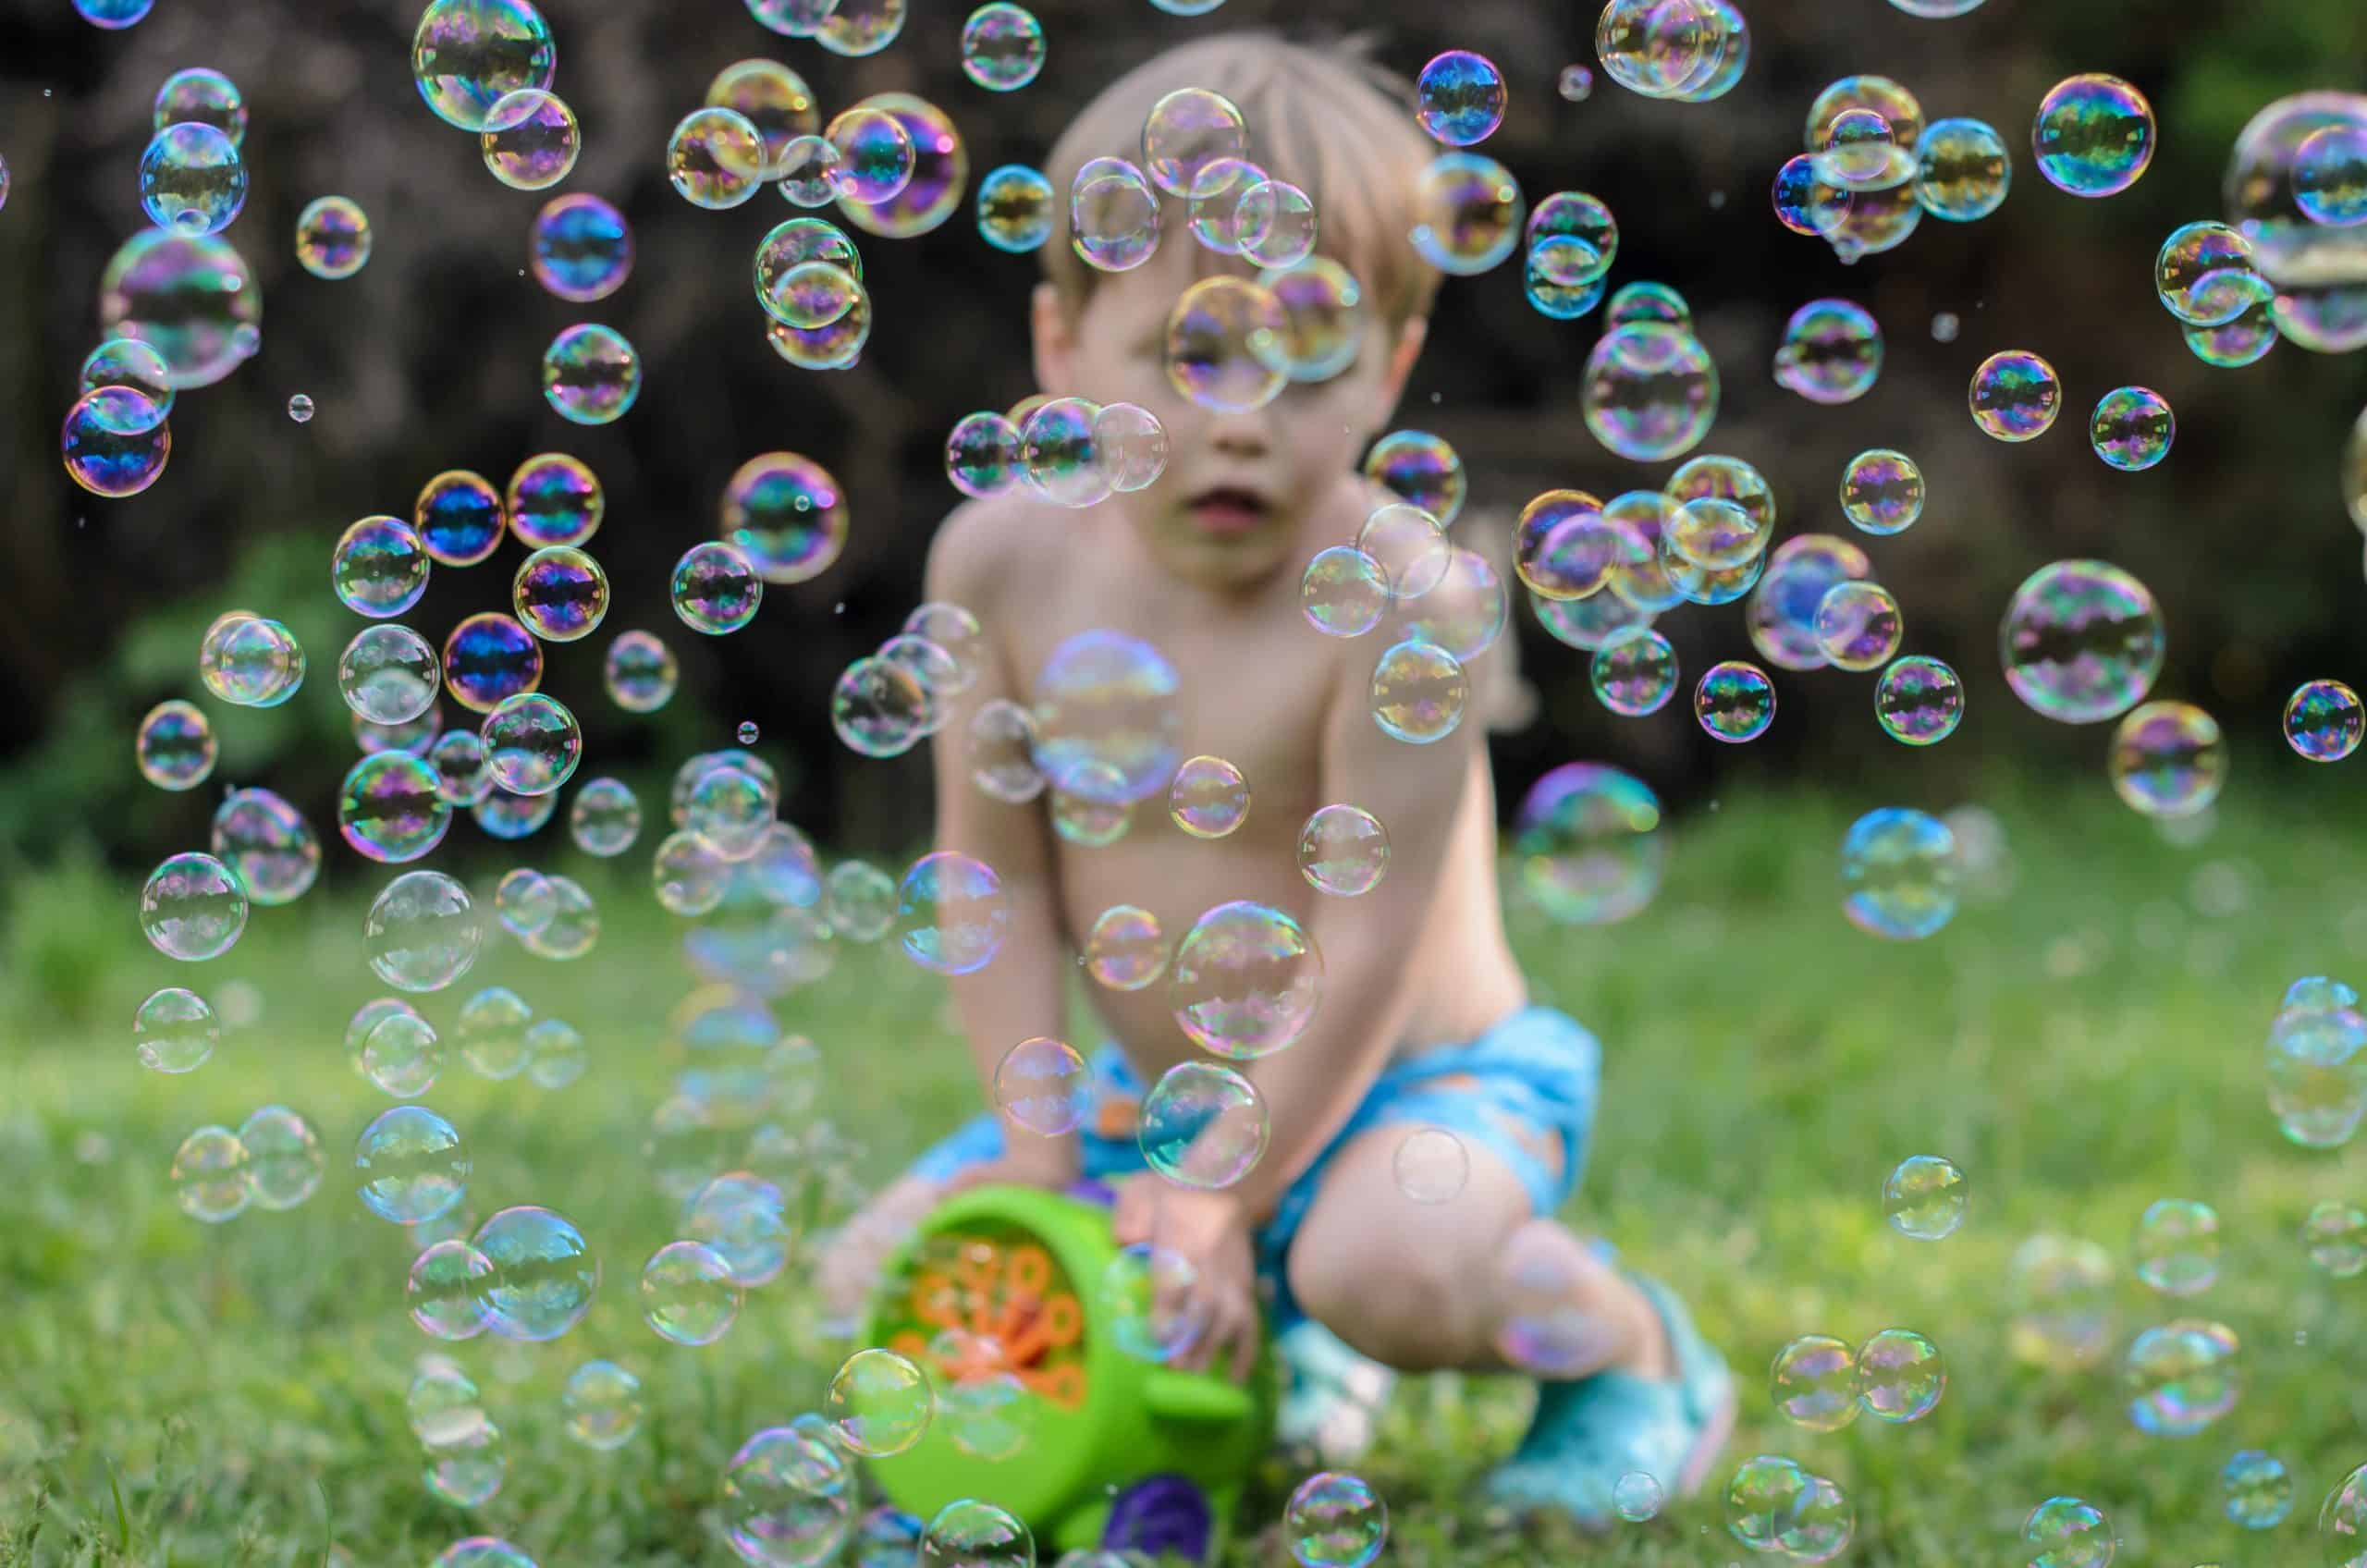 Blure boy plays with soap bubbles maker machine in the courtyard